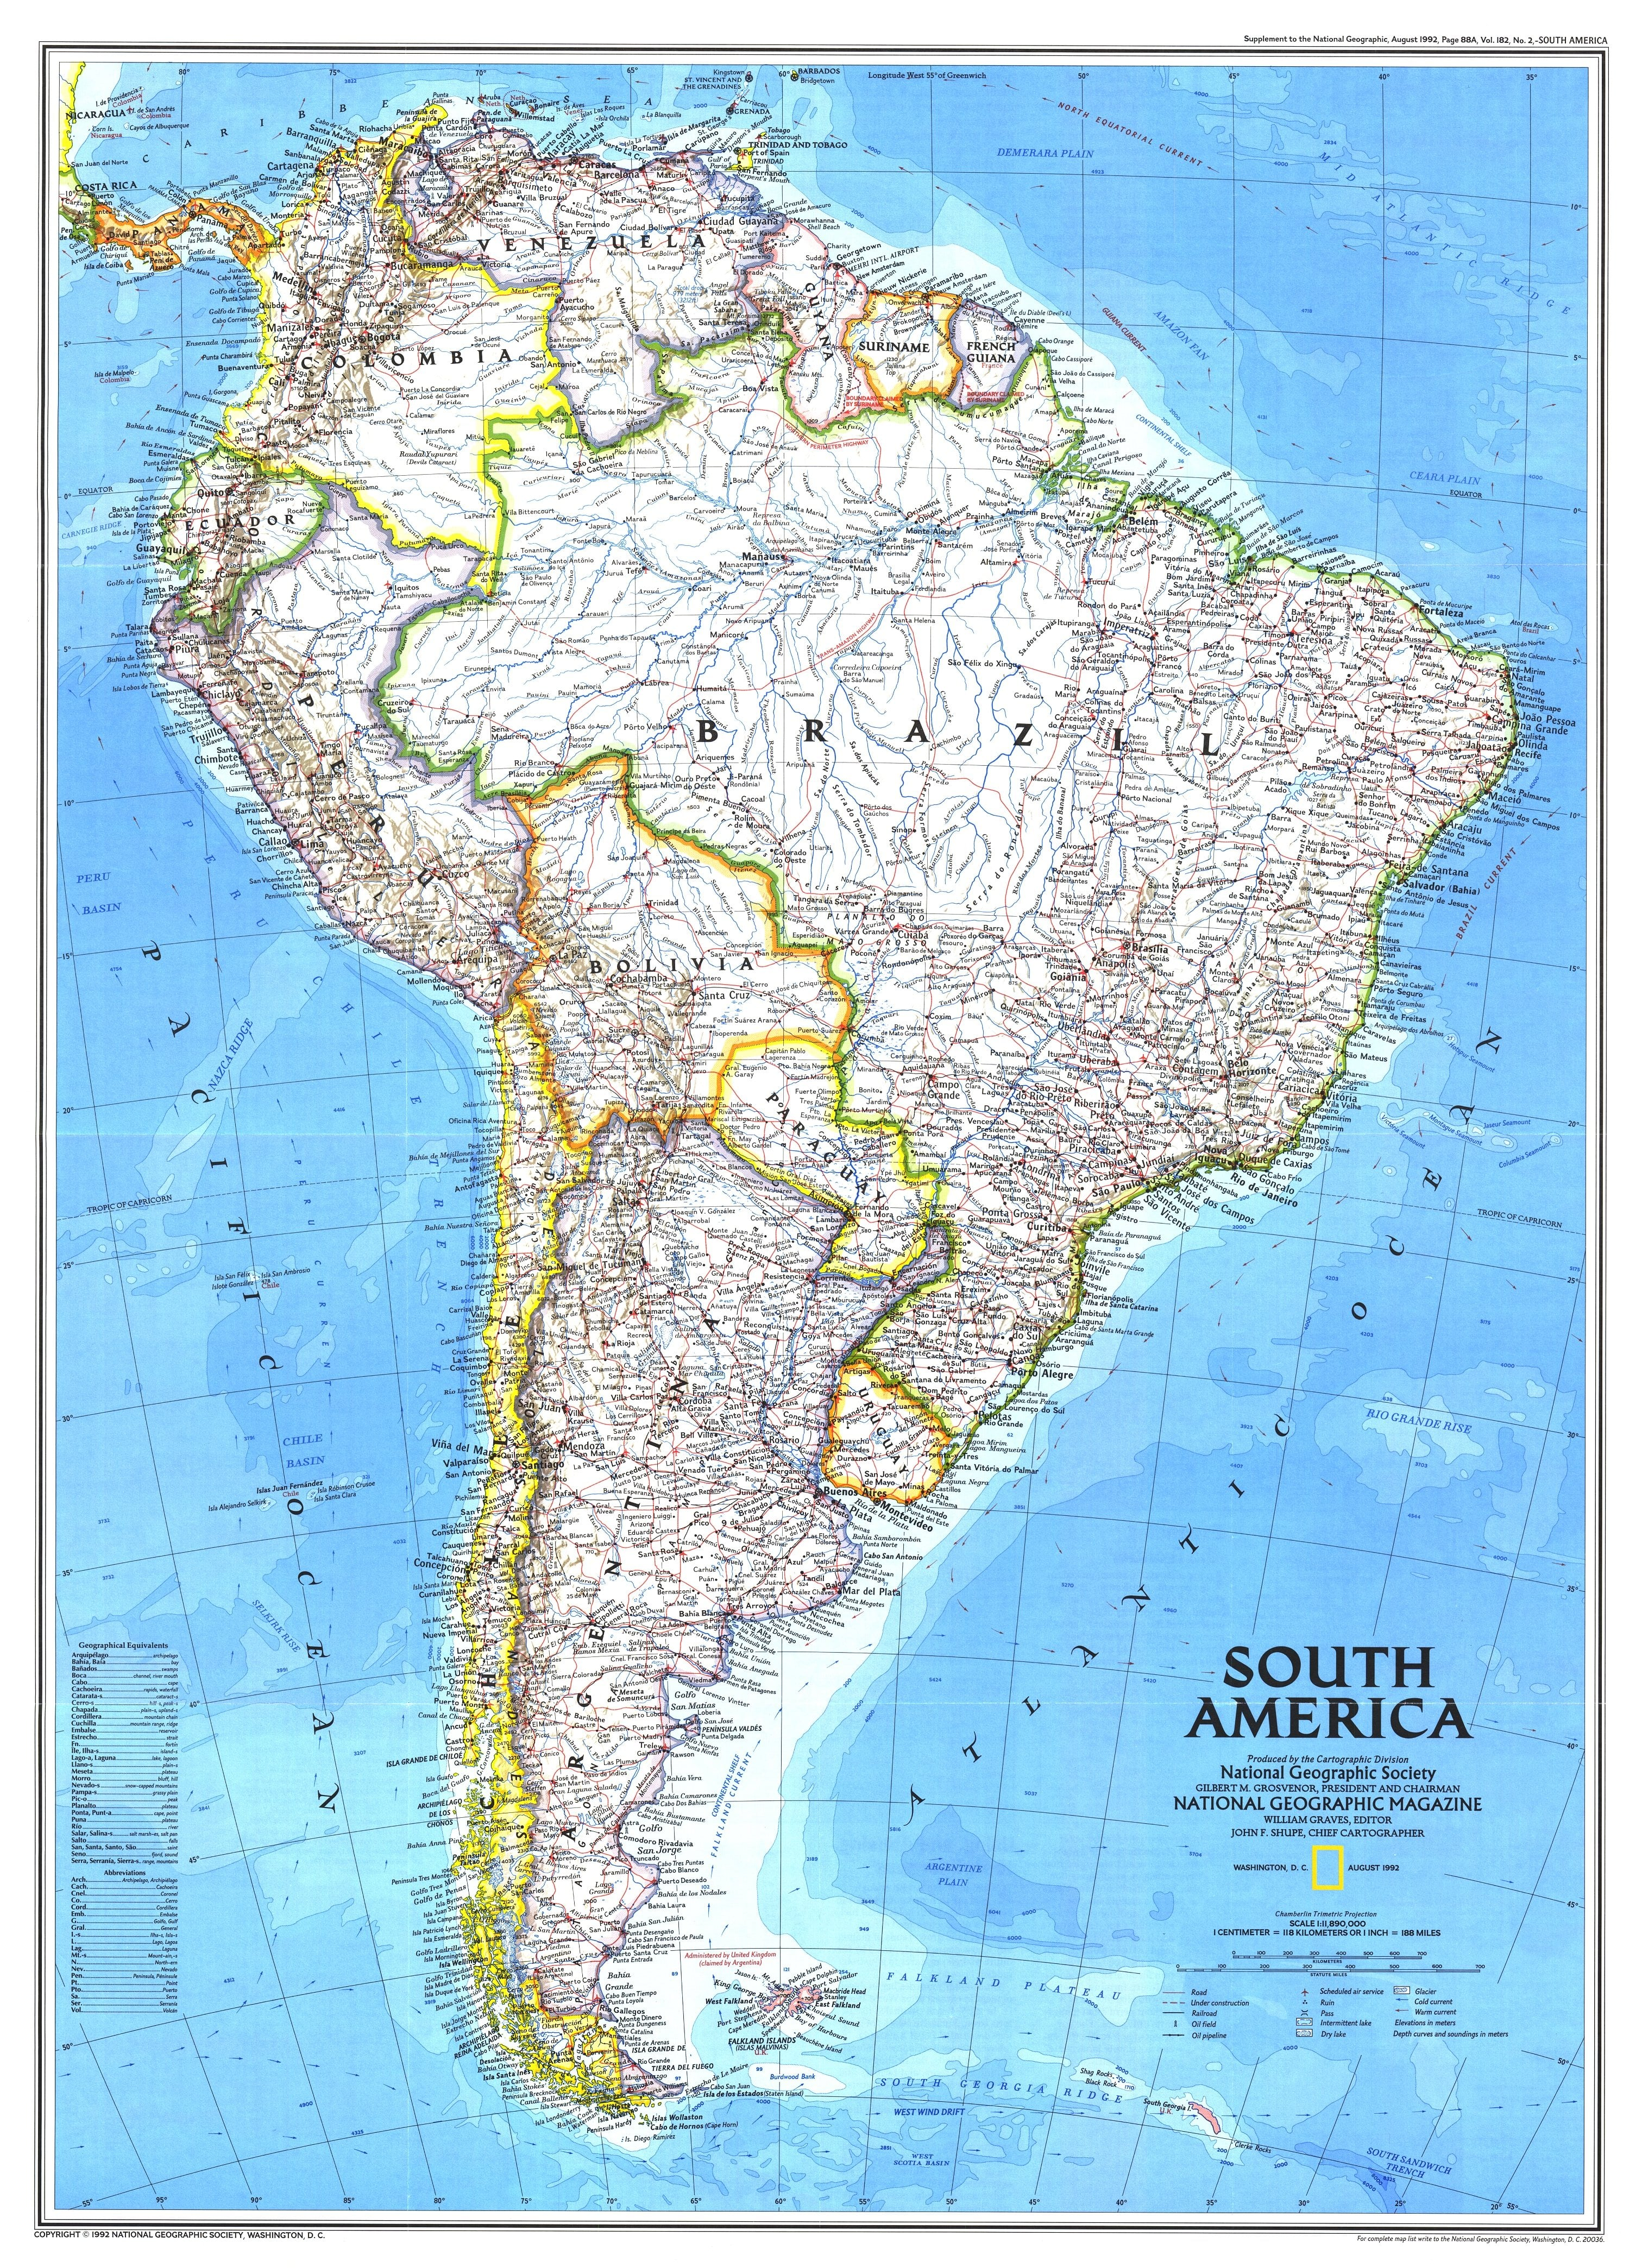 NGS 1992 South America Map S America Map on